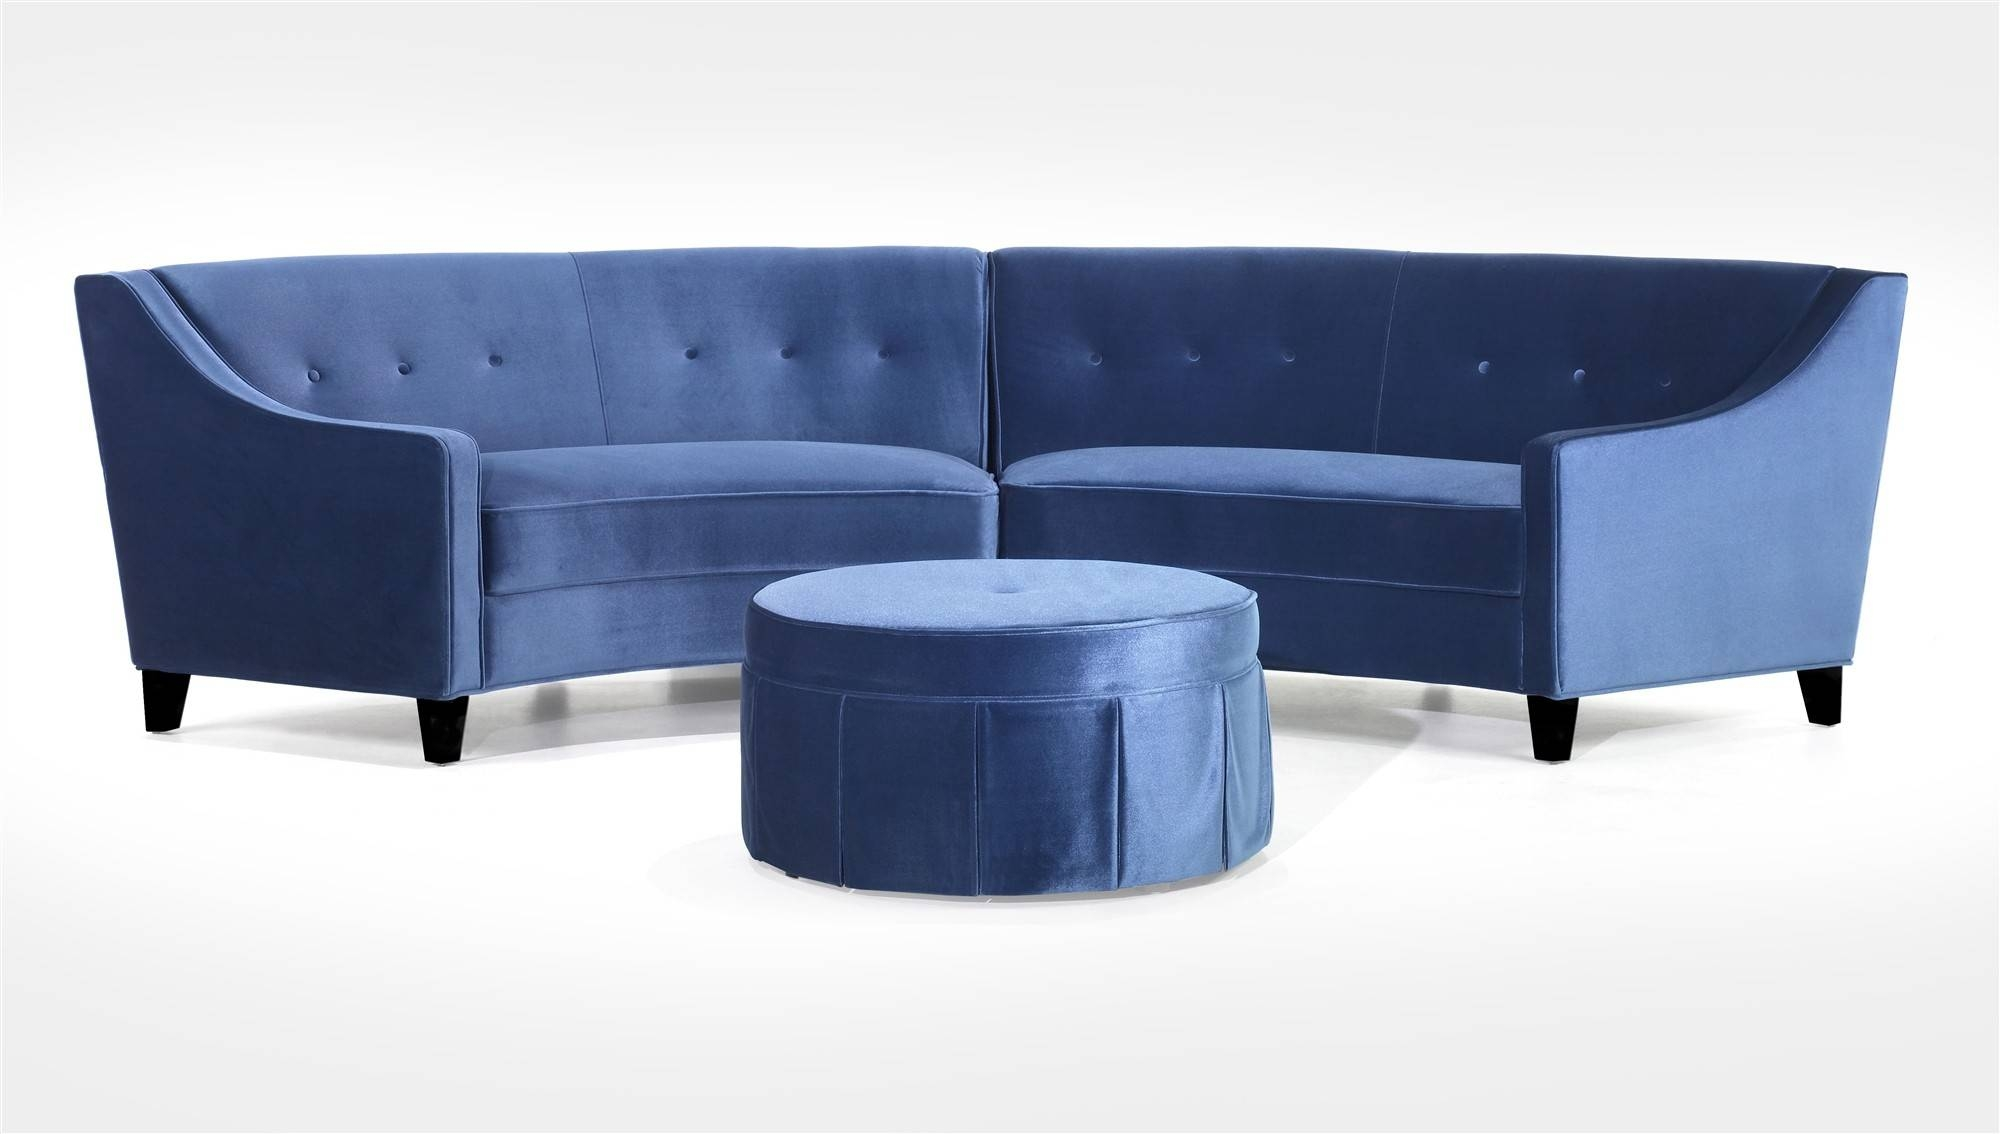 Furniture: Upholstered Fabric Curved Sectional Sofa For Living Throughout Circular Sectional Sofa (View 15 of 30)